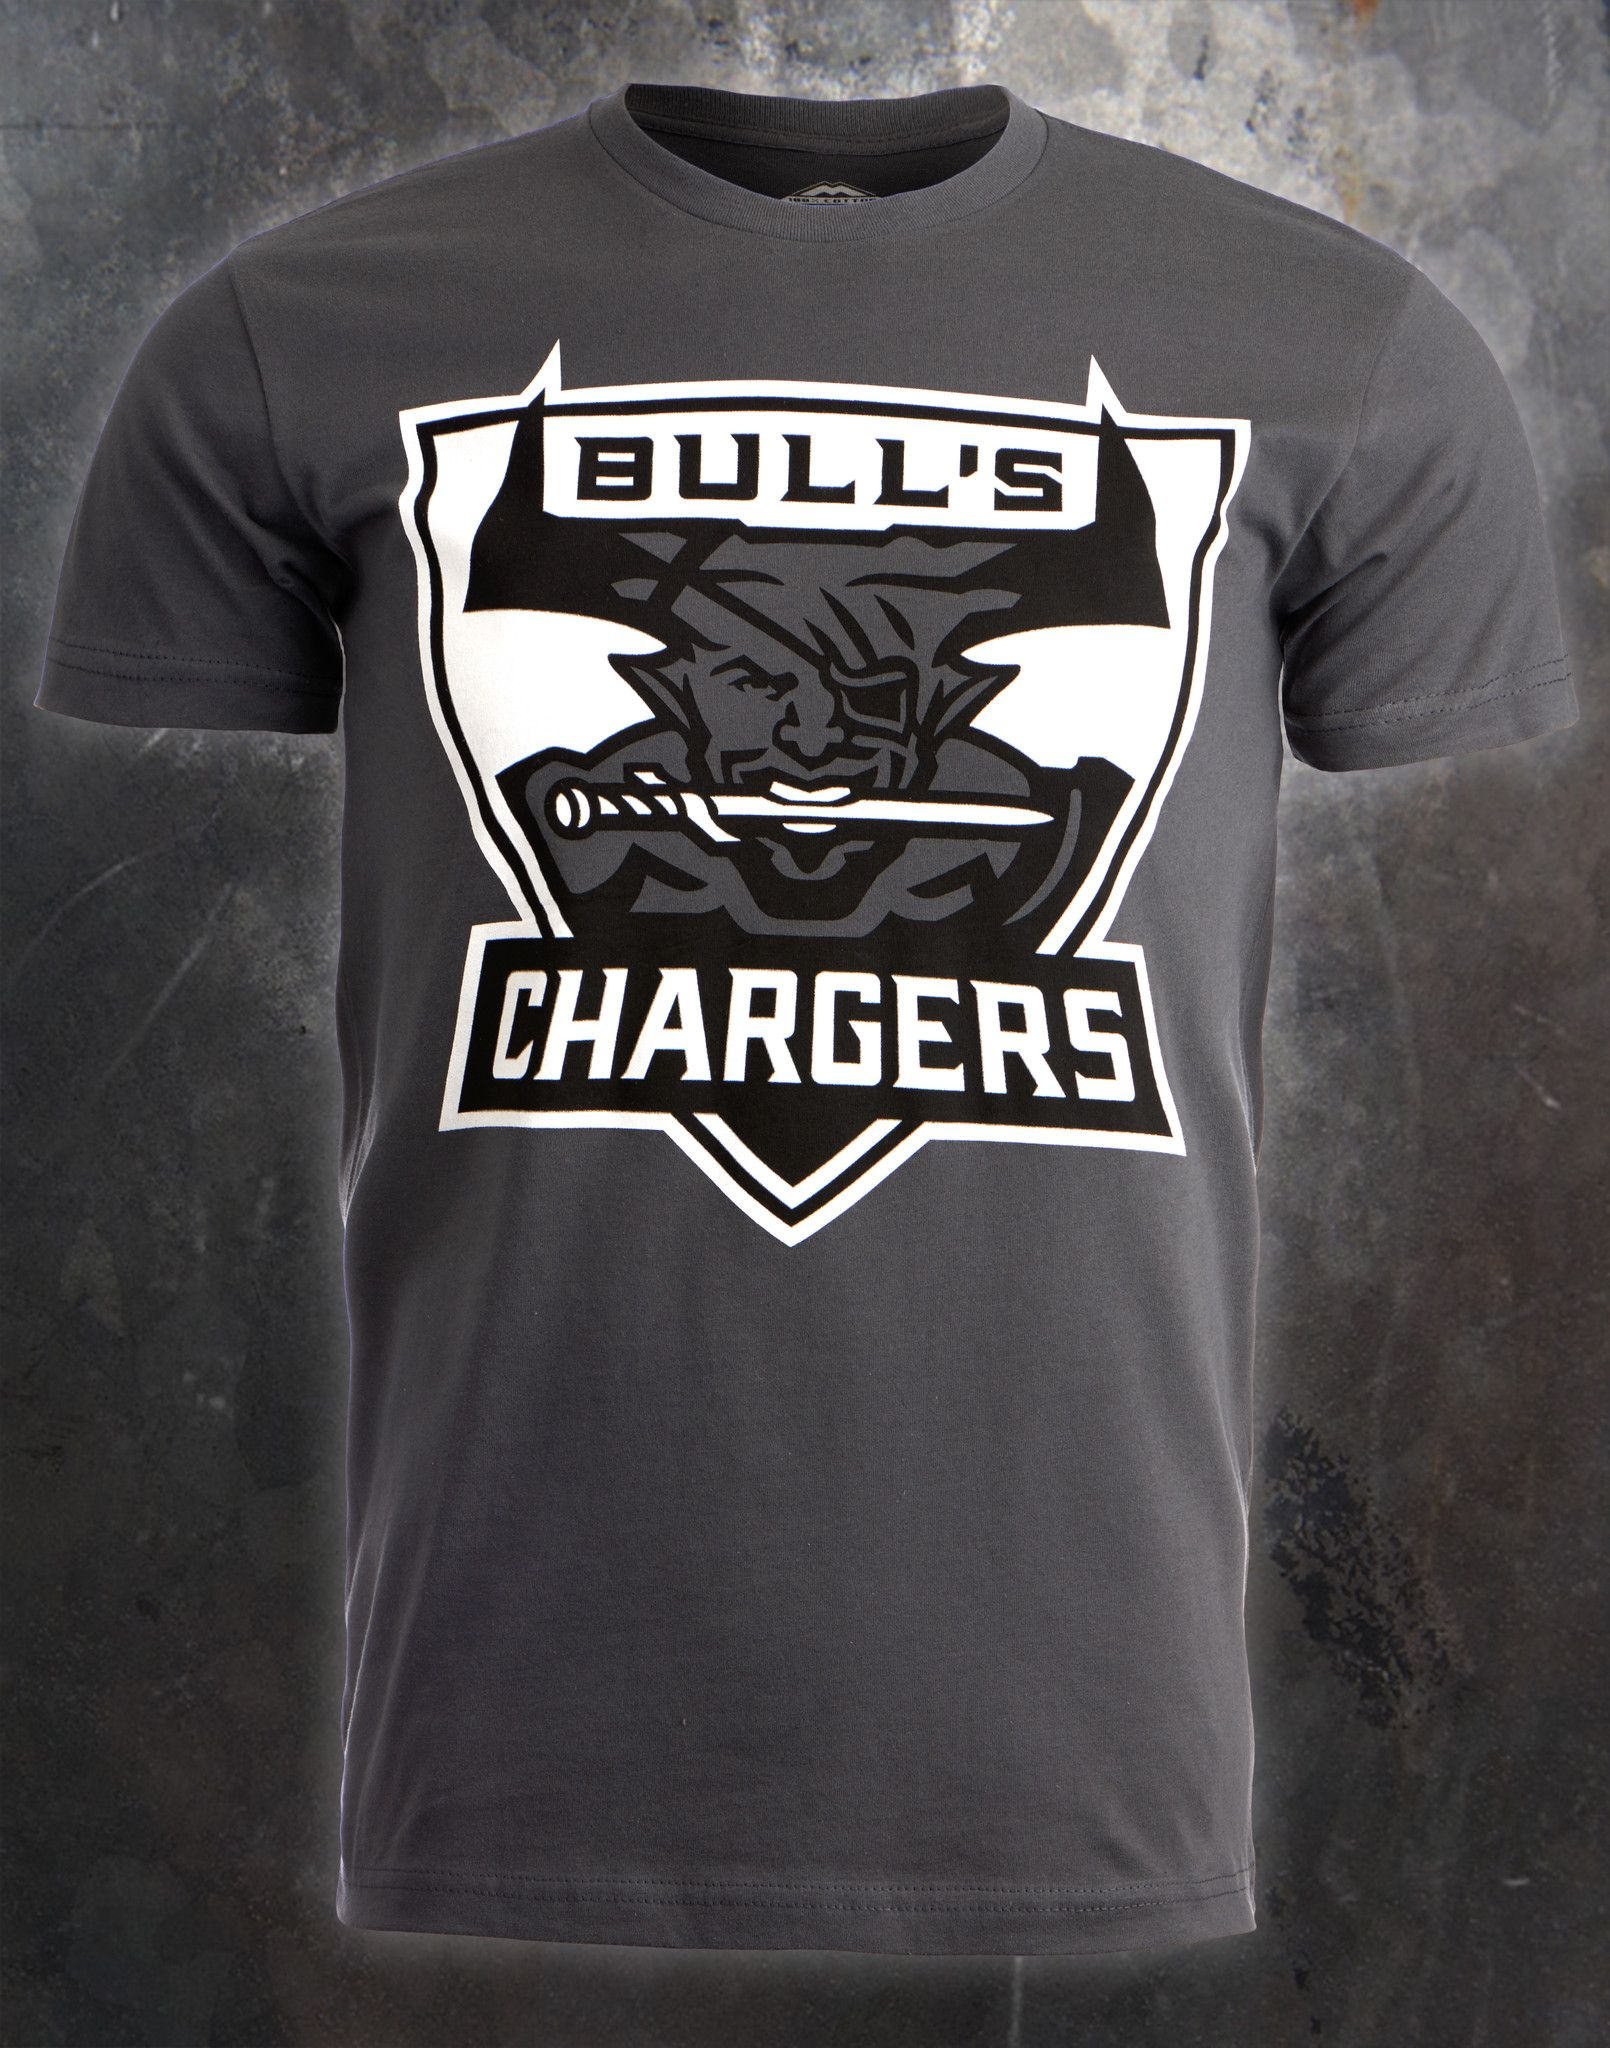 ... the bull s chargers shirt is a sport inspired mascot like design   ladainian tomlinson powder blue san go chargers jersey reebok ... a4b2afc3c